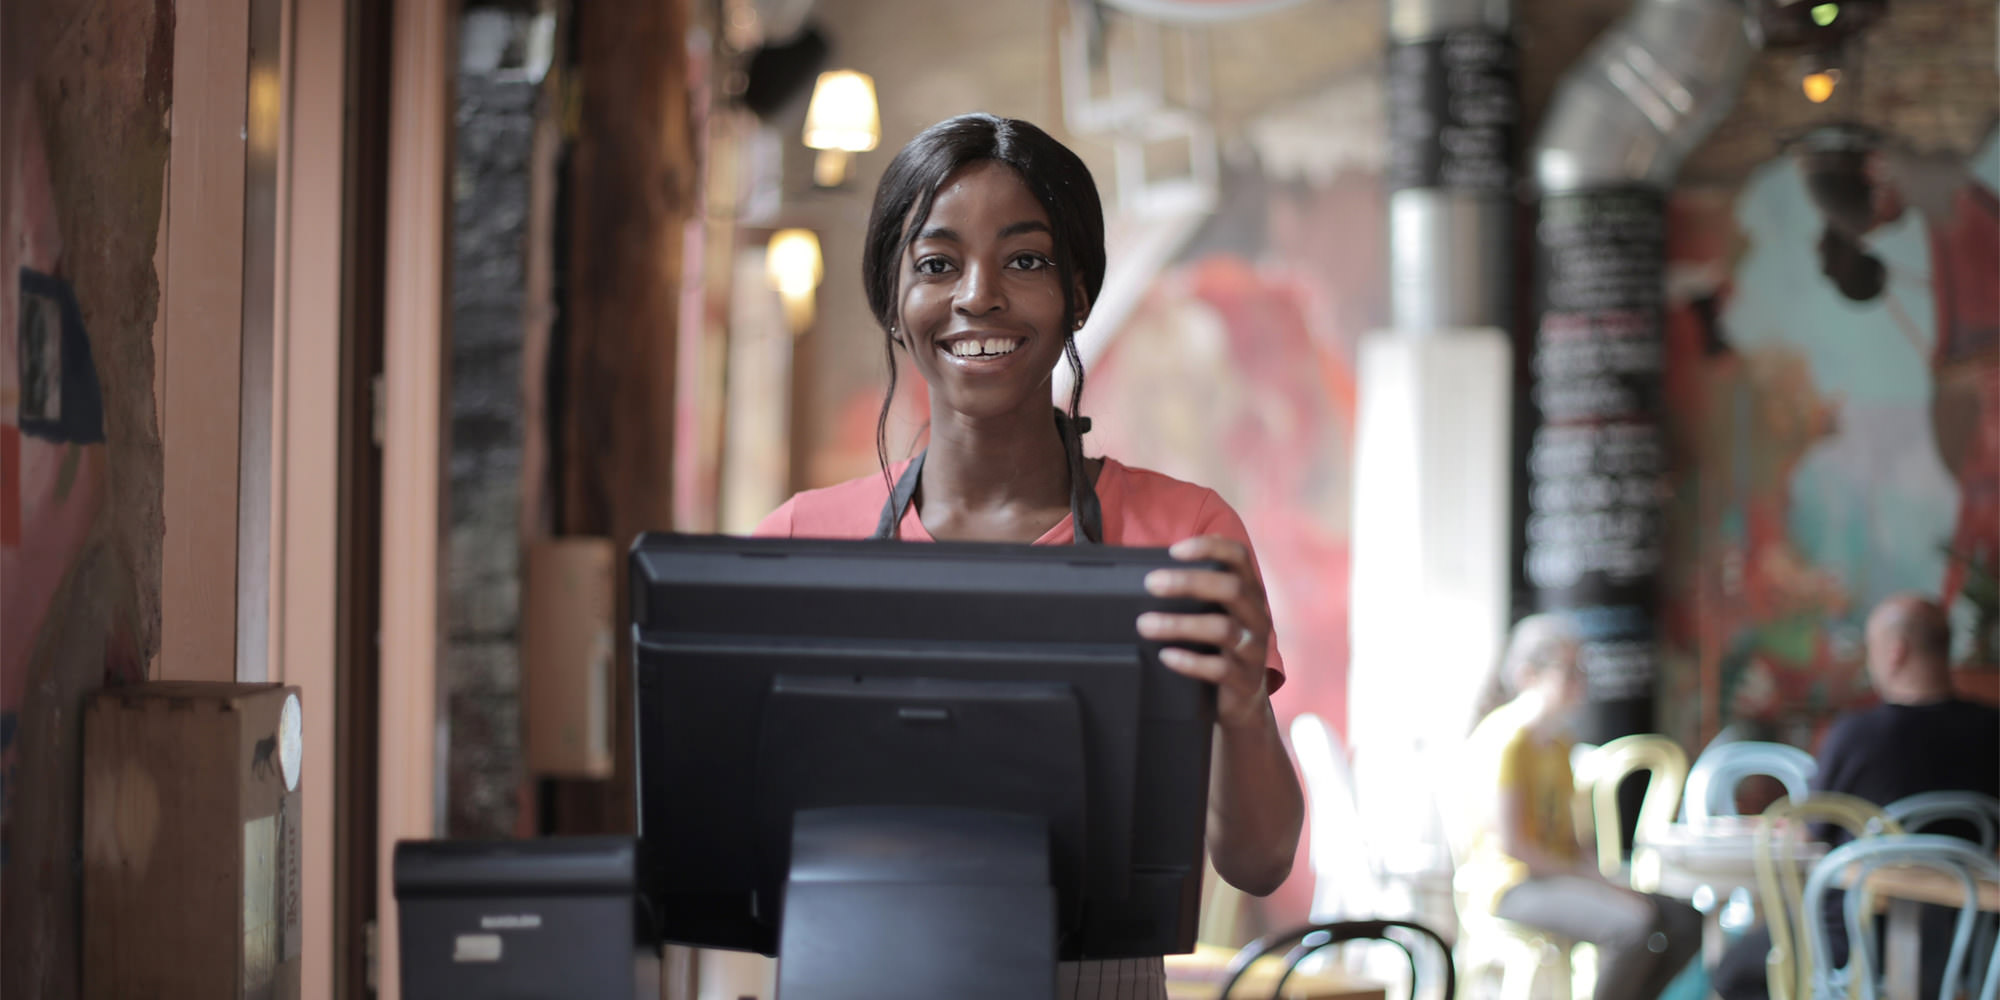 A young black waitress is standing at the cash register and smiling.